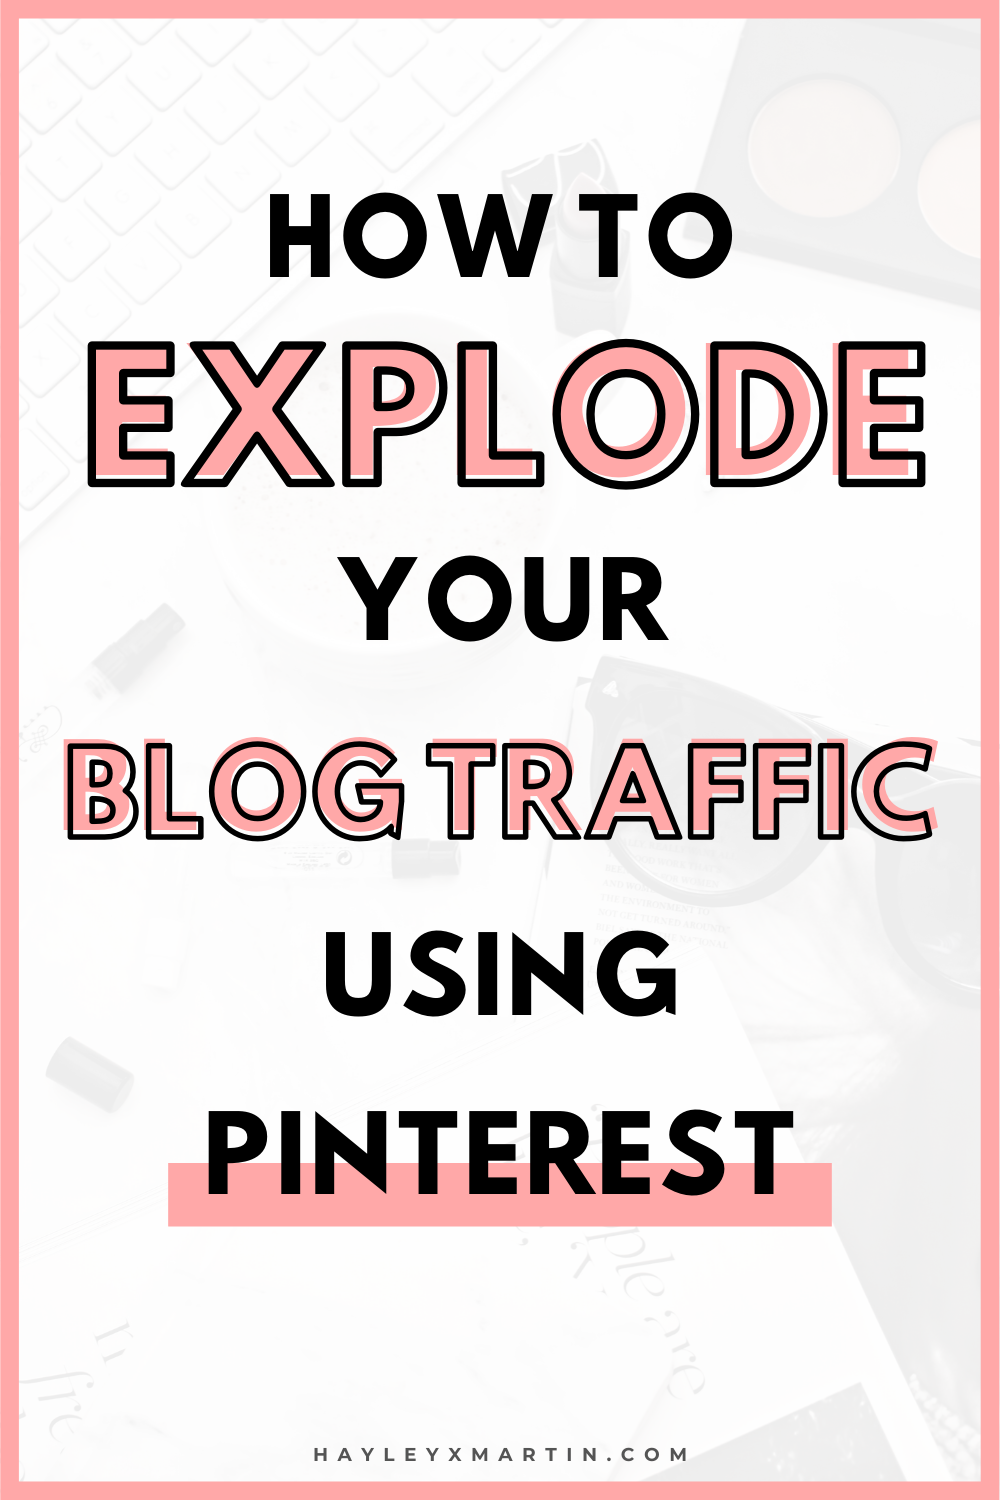 HOW TO EXPLODE YOUR BLOG TRAFFIC USING PINTEREST | HAYLEYXMARTIN